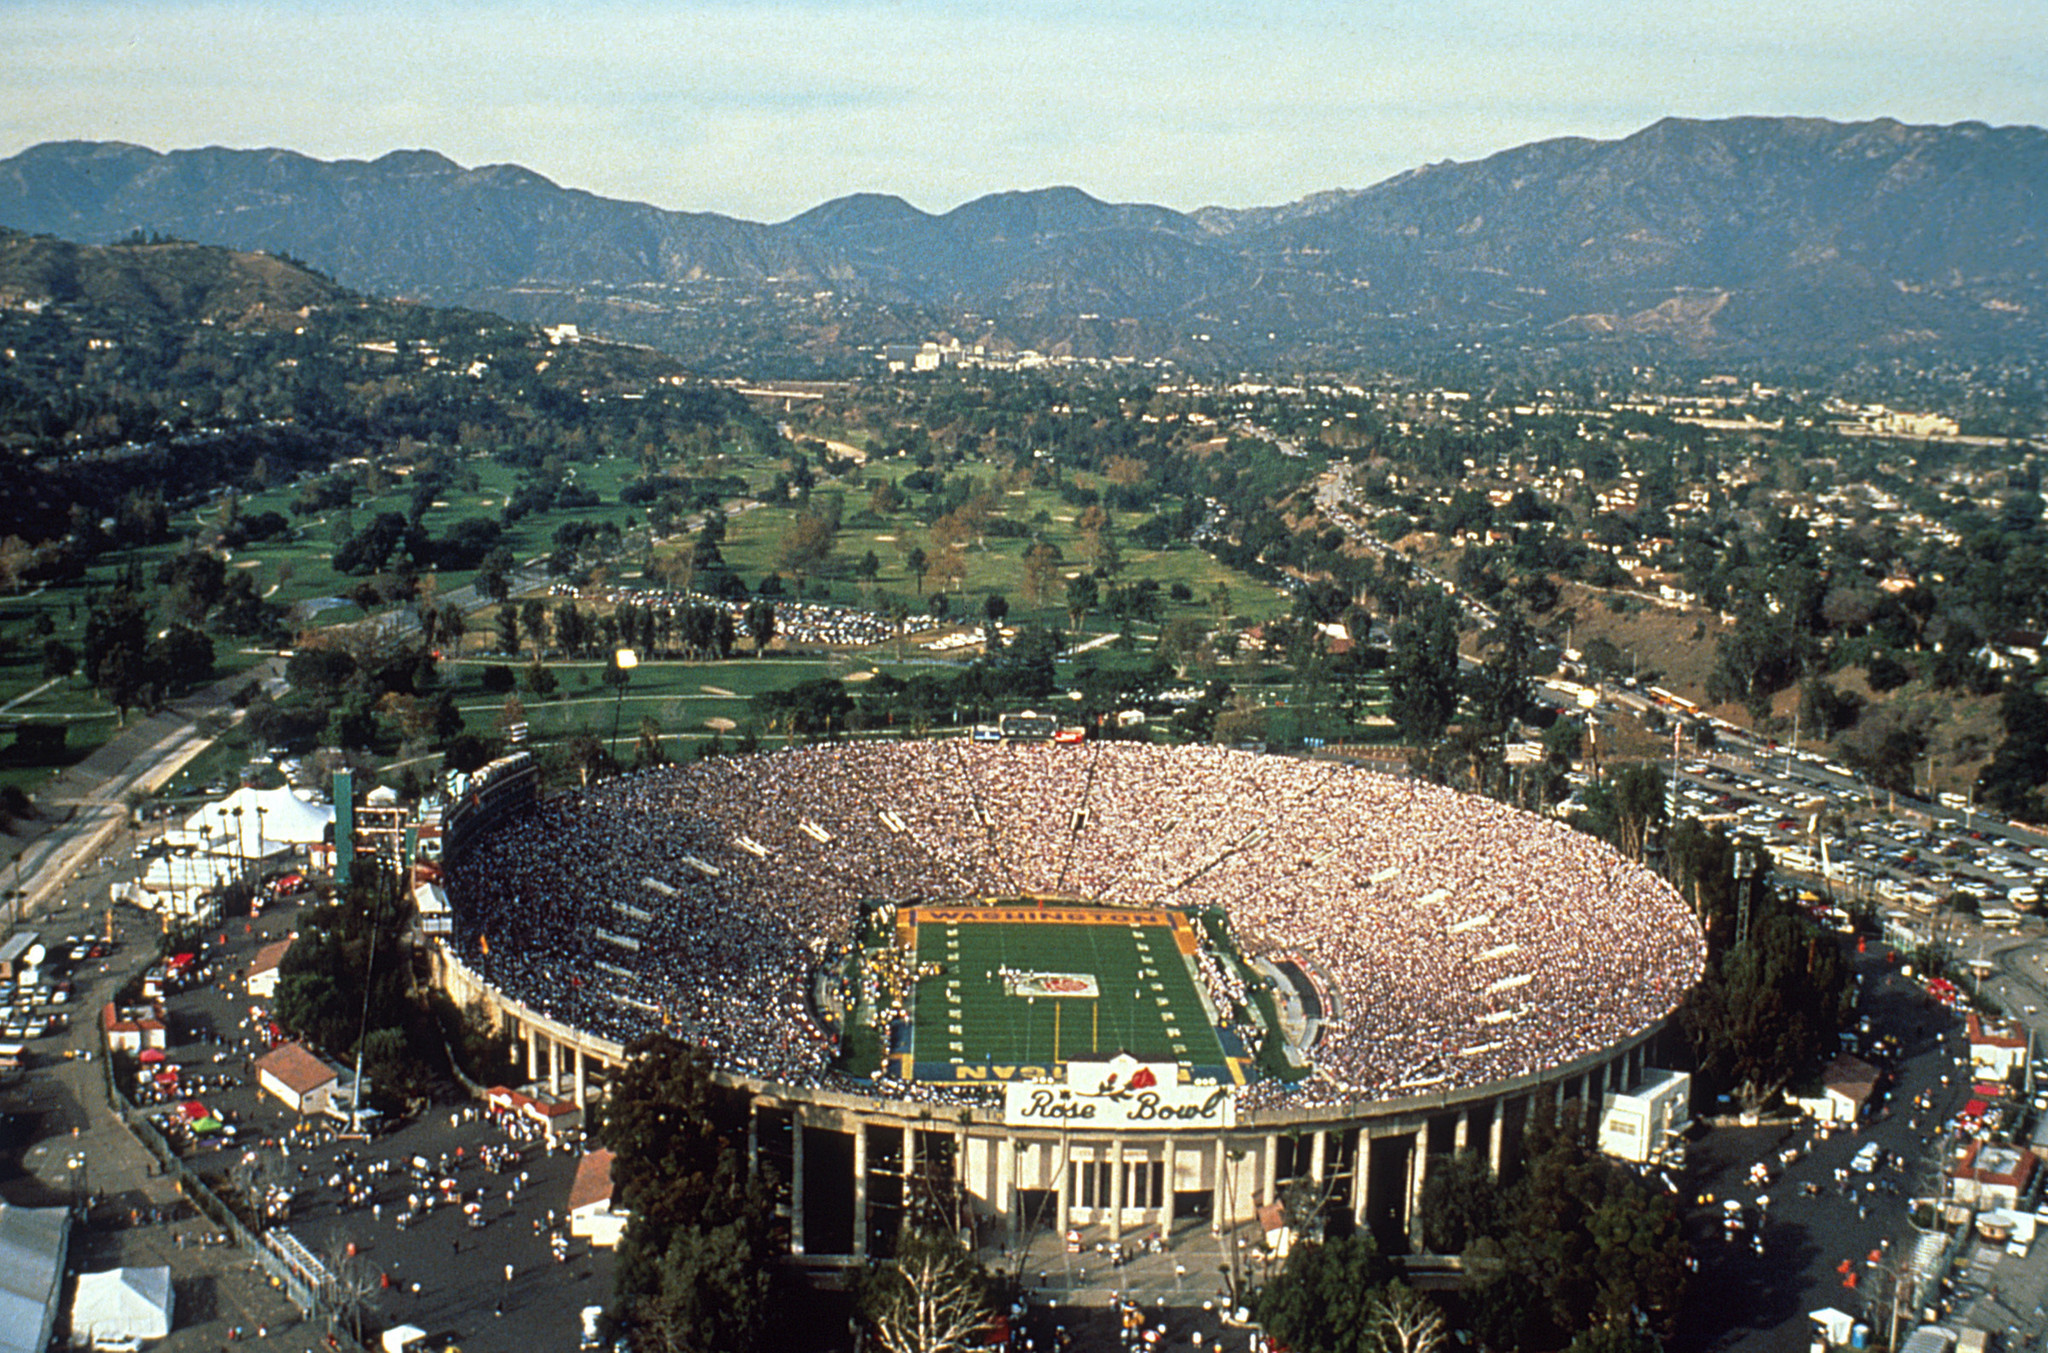 Rose Bowl To Be Among 10 Copa America Venues La Times